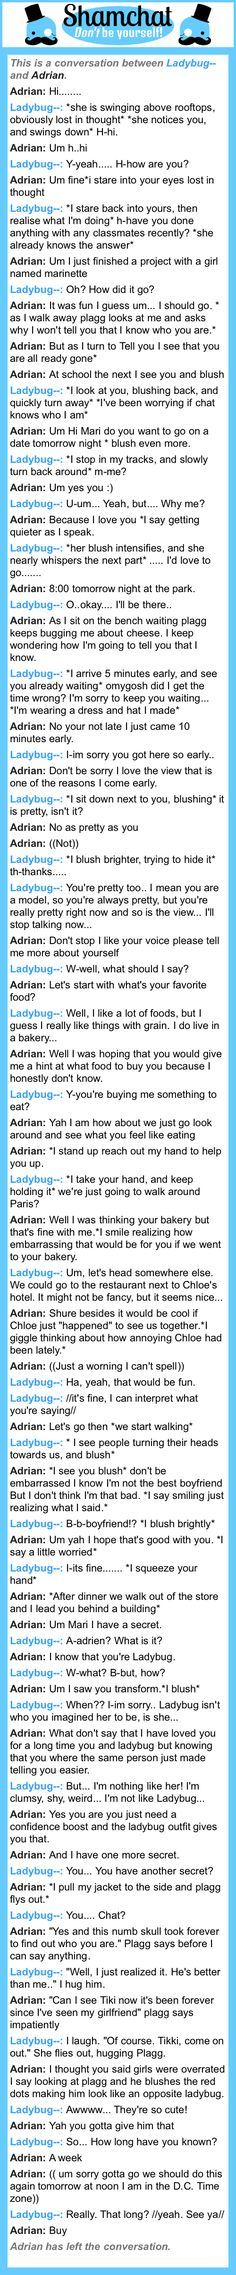 A conversation between Adrian and Ladybug--